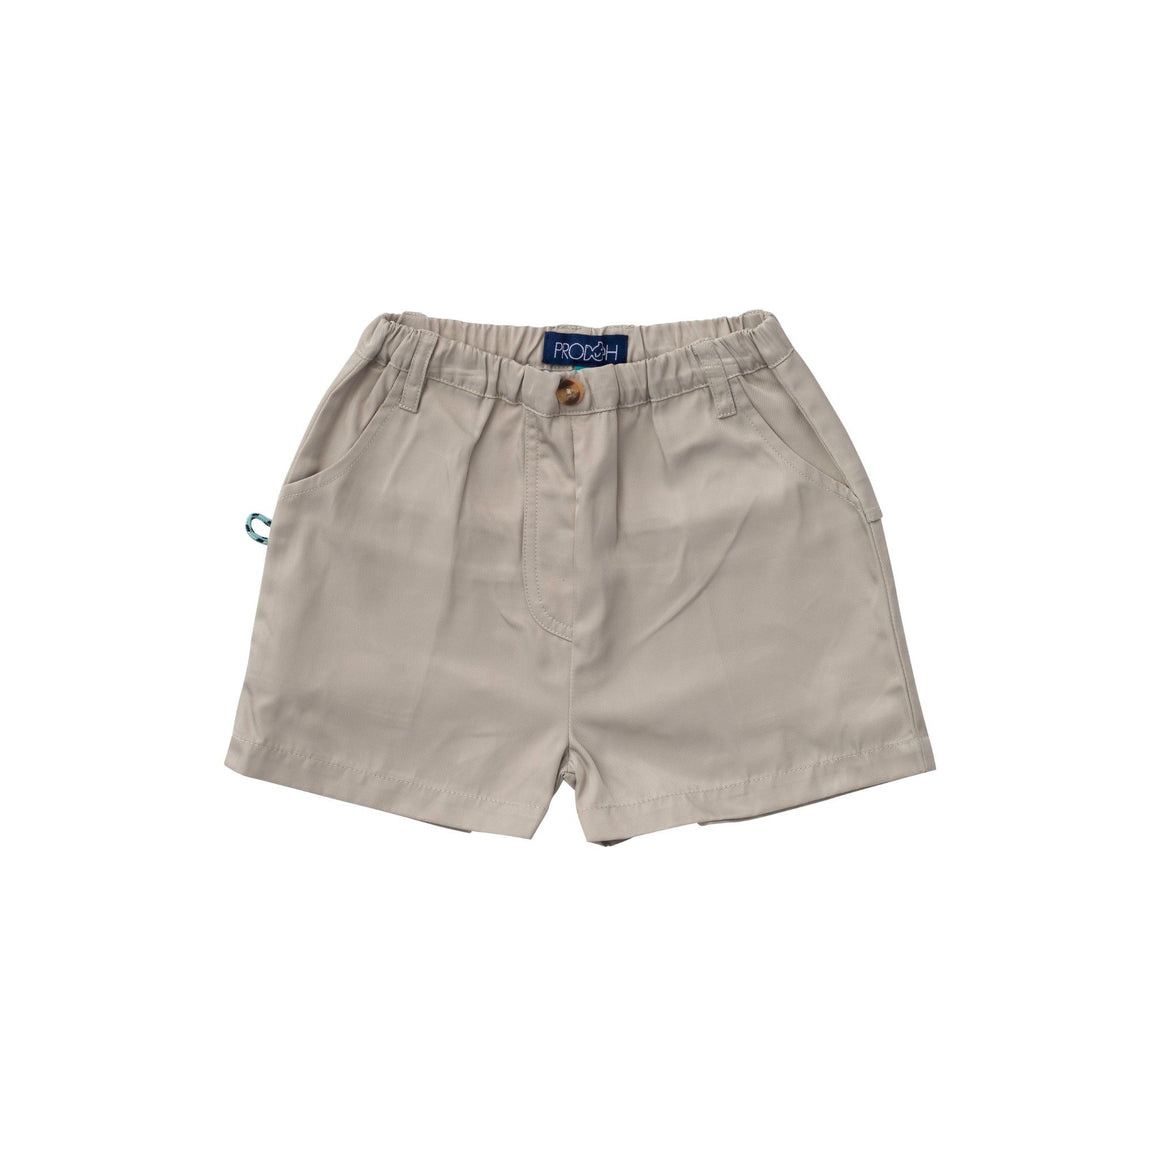 Prodoh | Original Angler UPF50+ Fishing Short | Tan